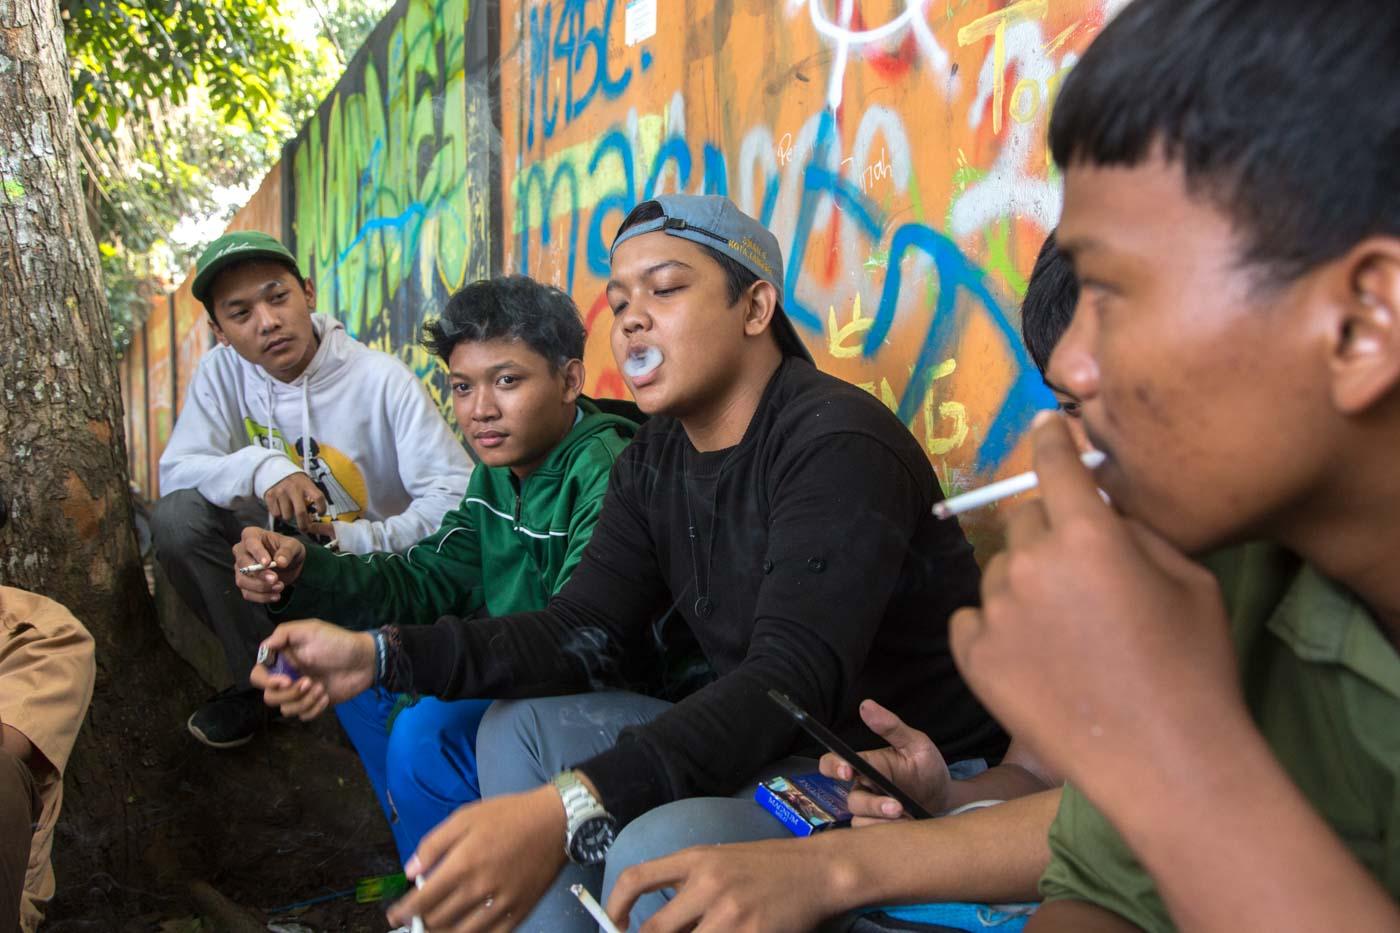 STUDENTS. Students hang out after school while smoking cigarettes in Bogor, West Java. Photo courtesy of Gembong Nusantar/TBIJ